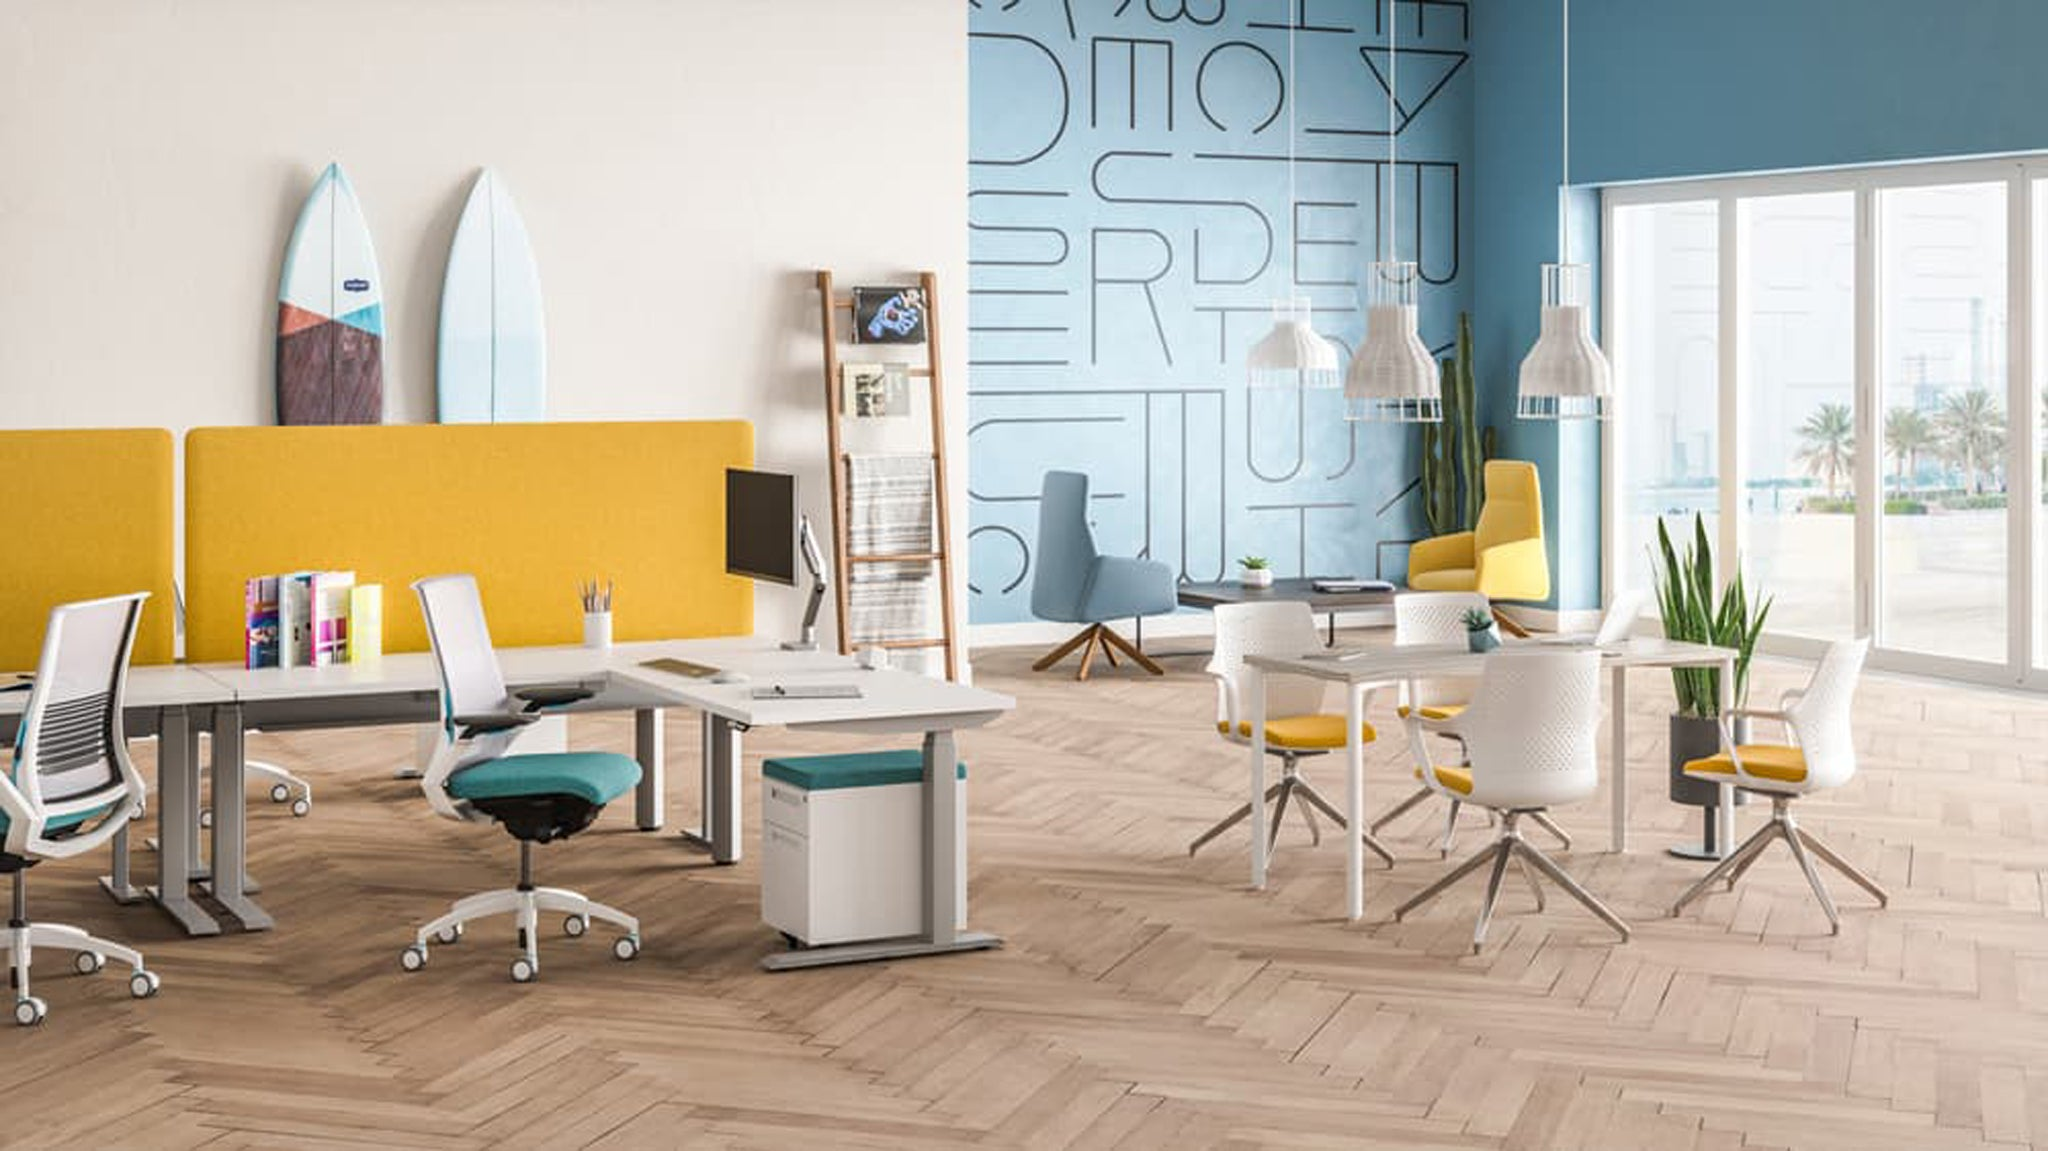 Products pictured: Switchback Height Adjustable Desk, Amplify, Ionic and Envoi Seating